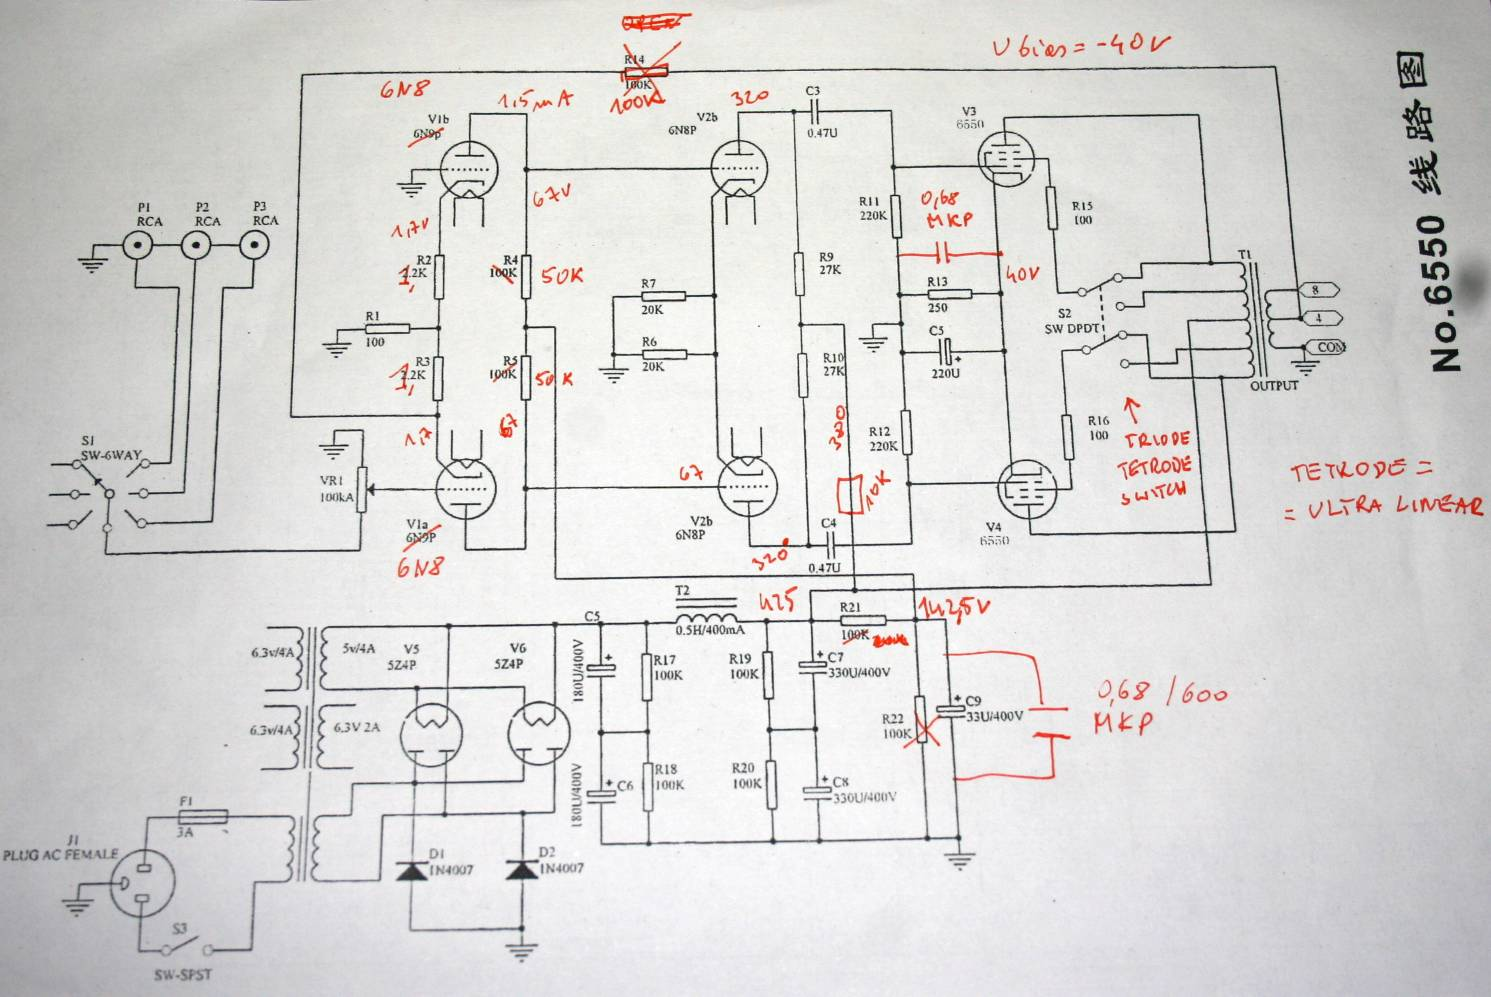 45 Farmtrac Wiring Diagram on wiring diagram for lifier